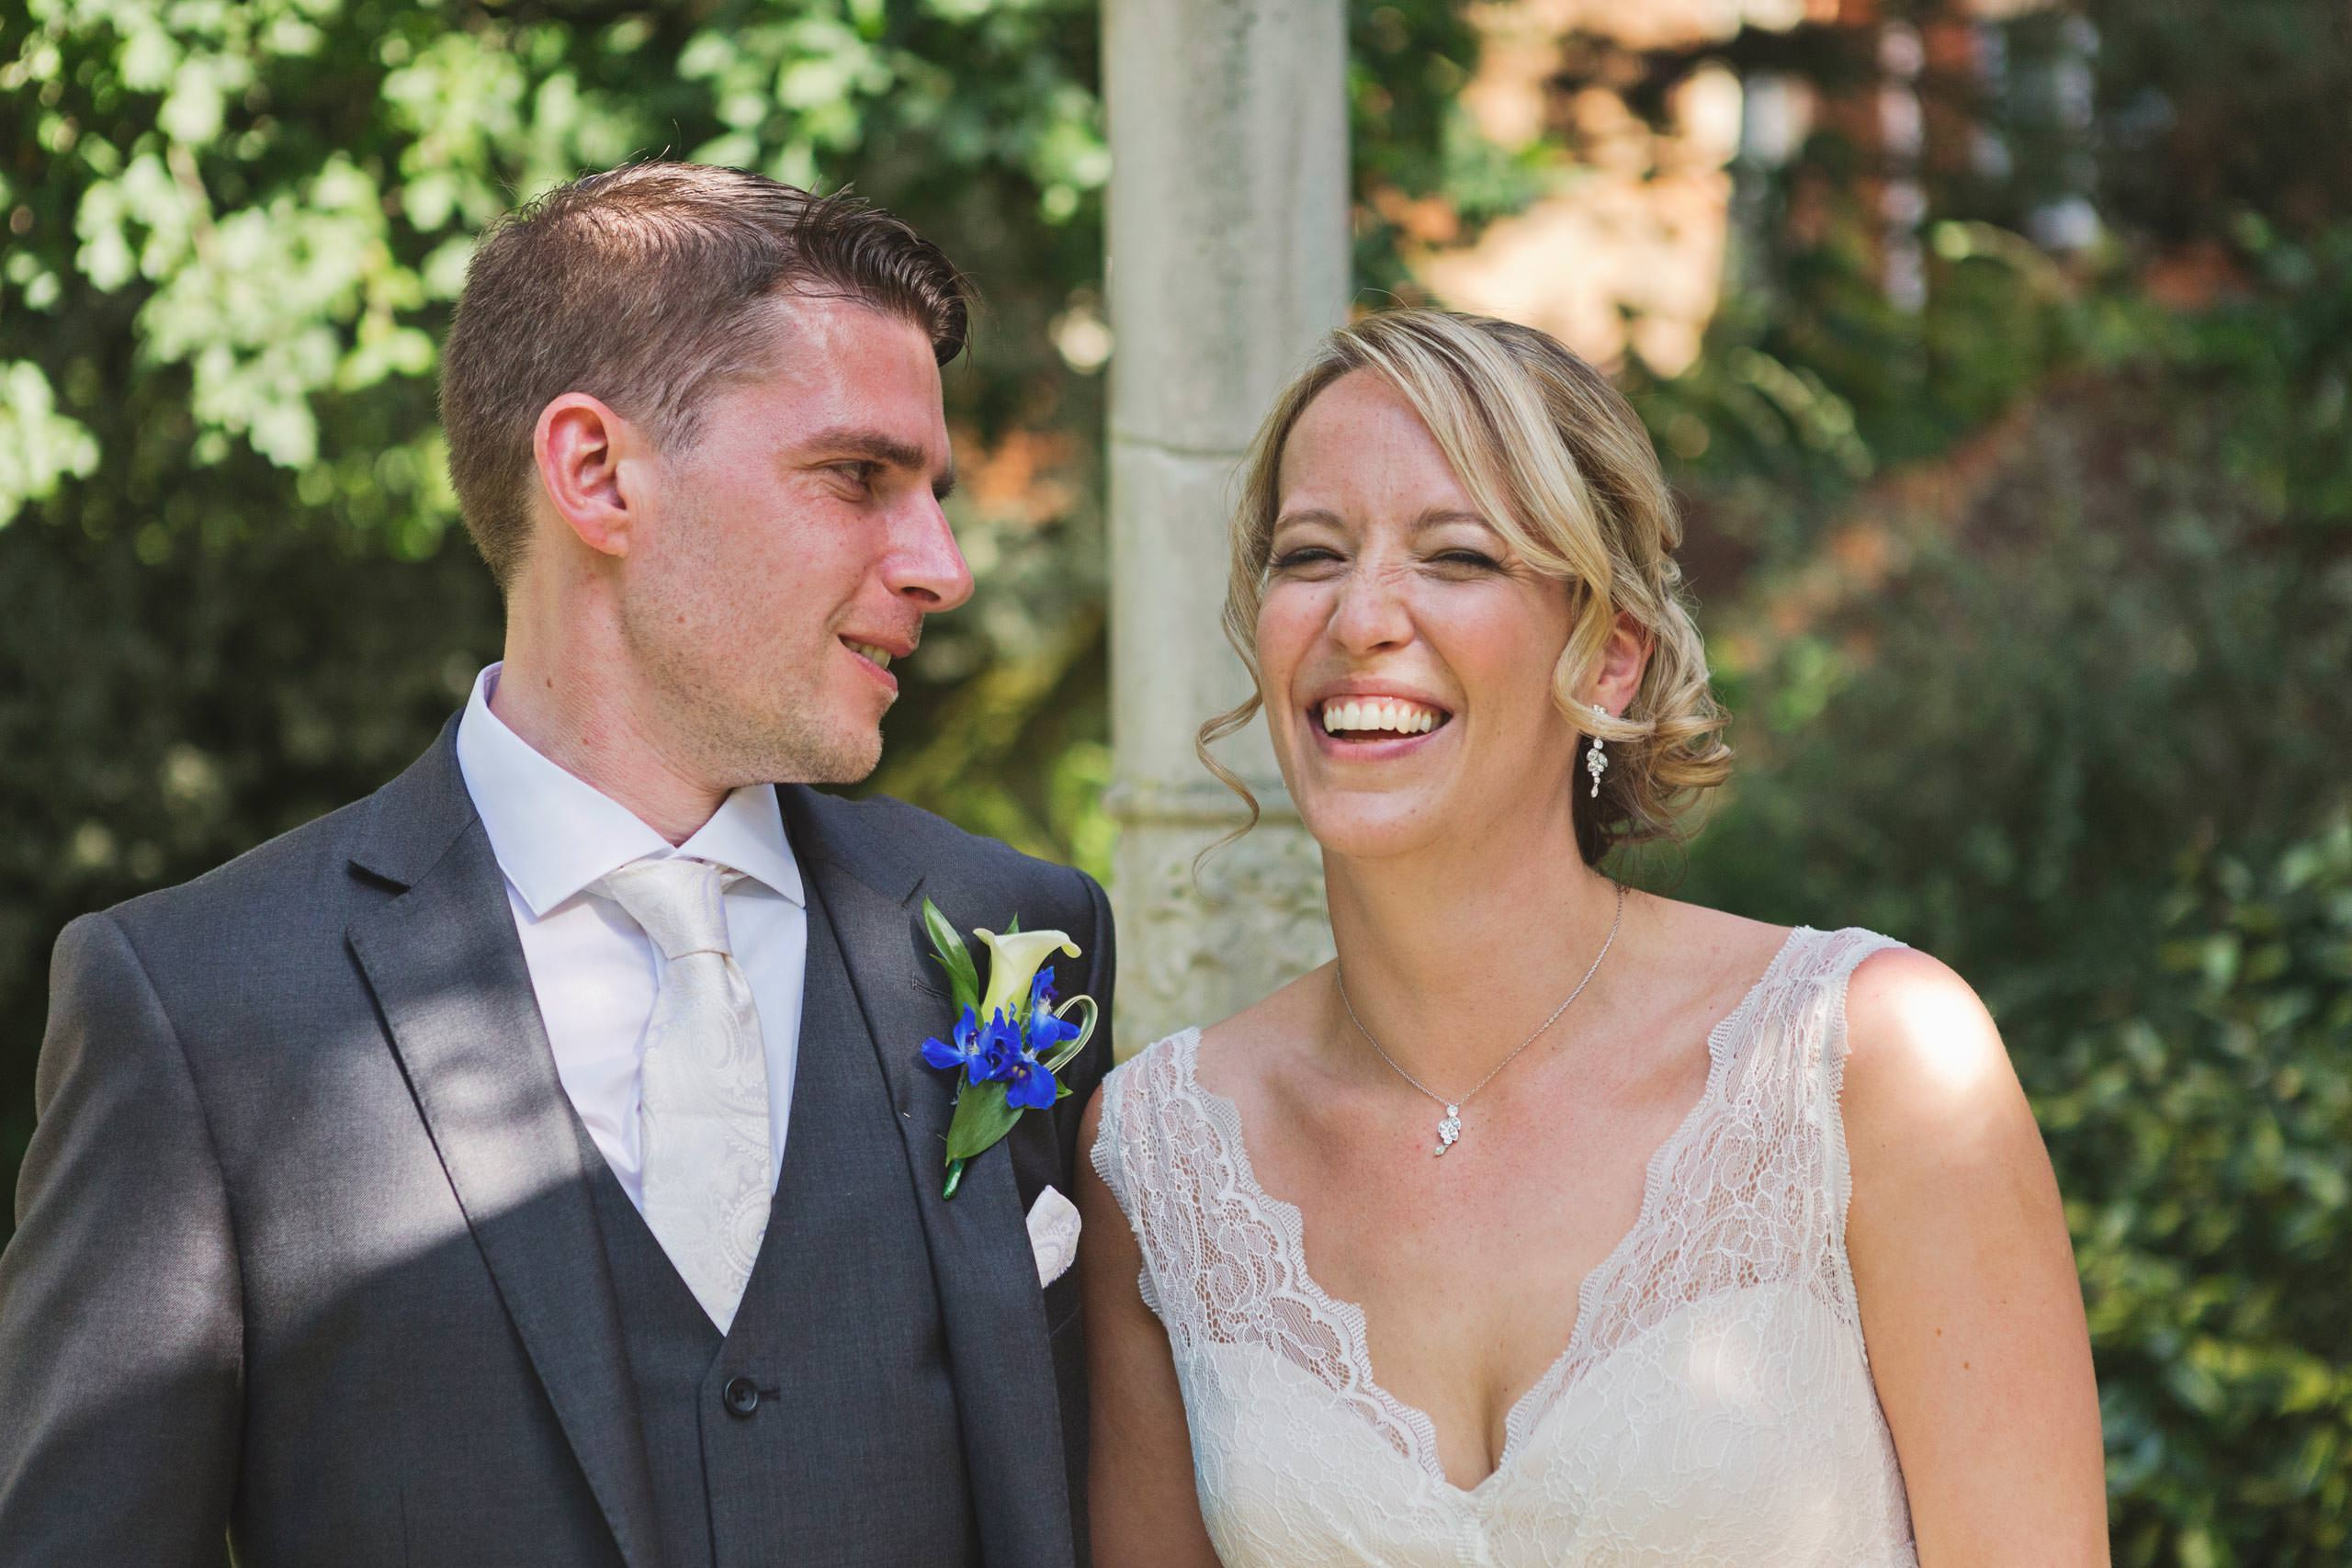 A bride & groom share a joke on their wedding day